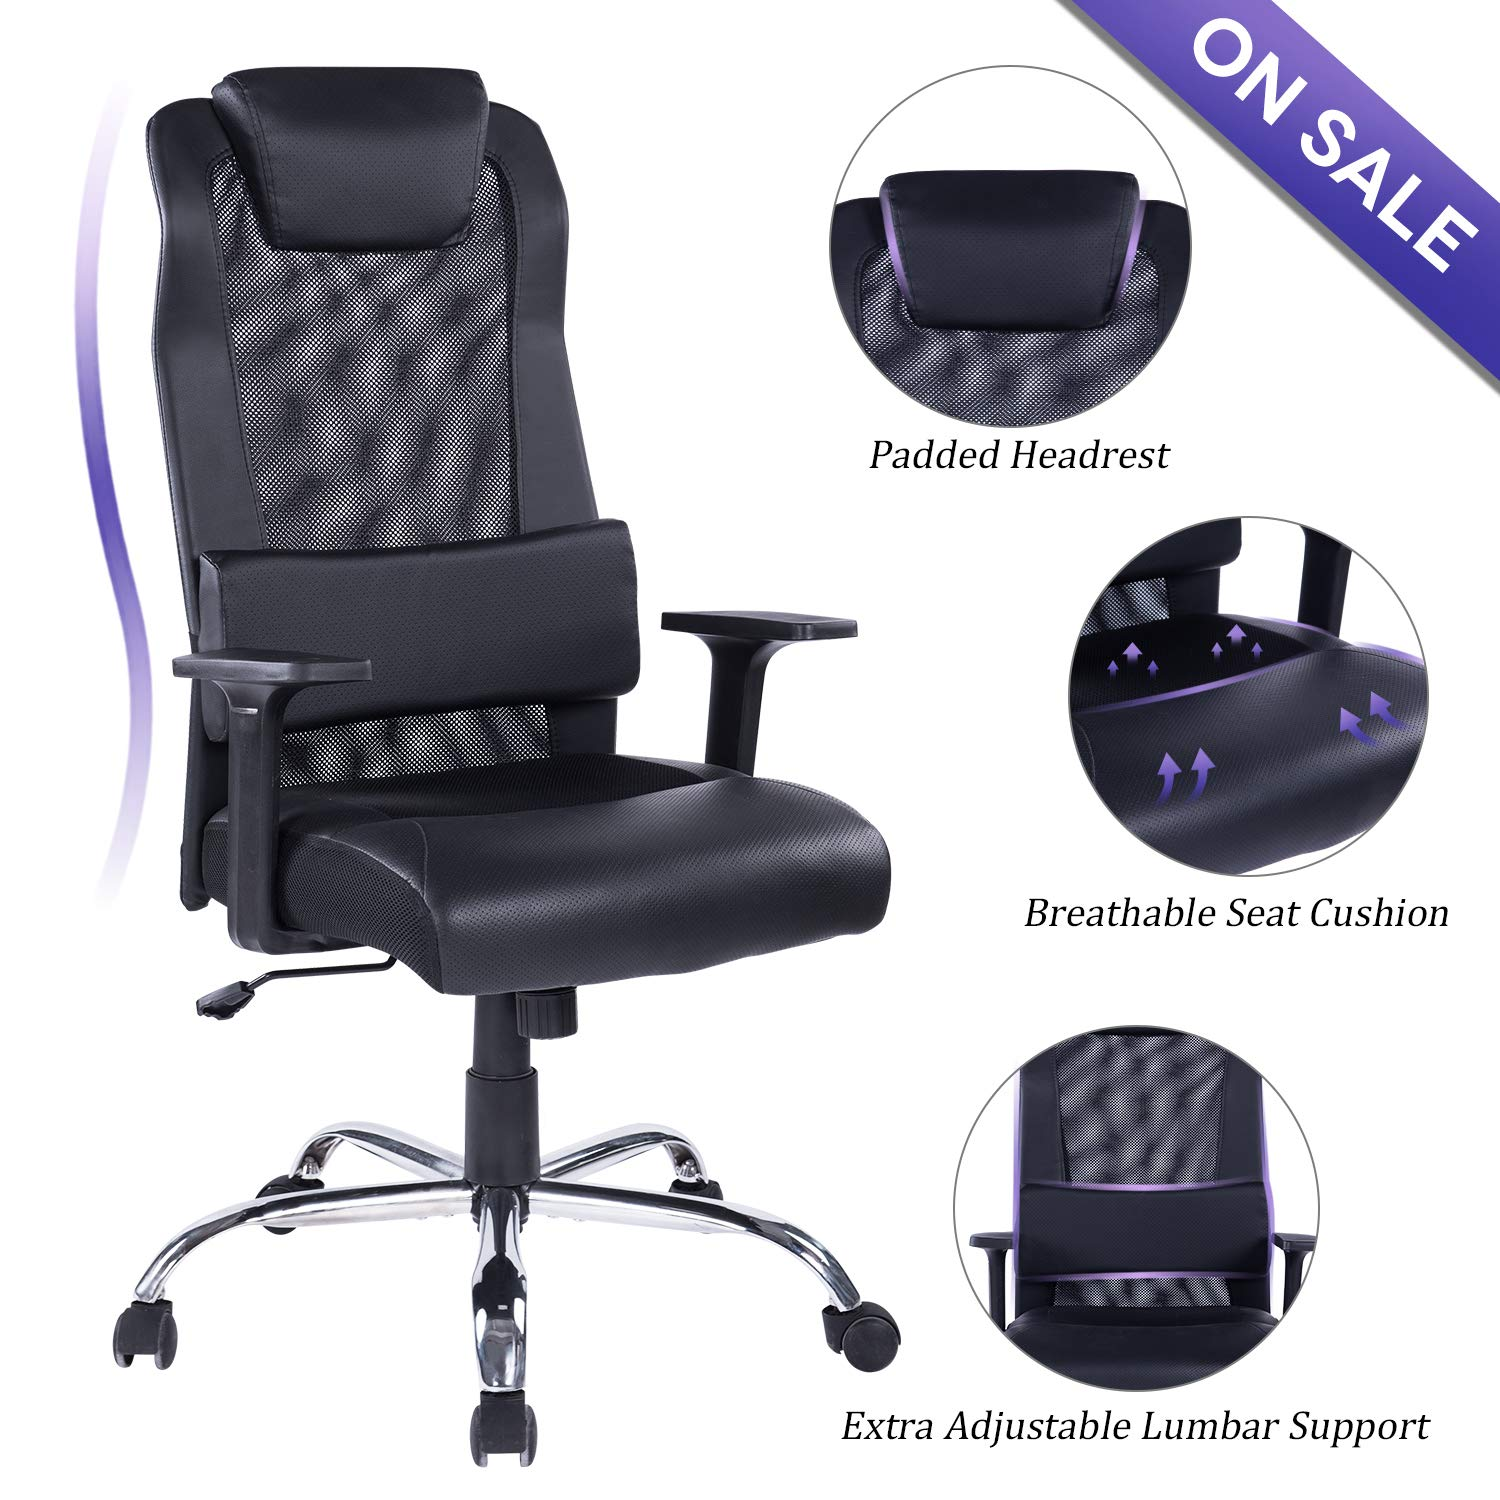 REFICCER Mesh & PU Leather Office Chair Computer Desk Task Ergonomic Swivel Chair - Adjustable Lumbar Support and Padded Headrest, Black by REFICCER